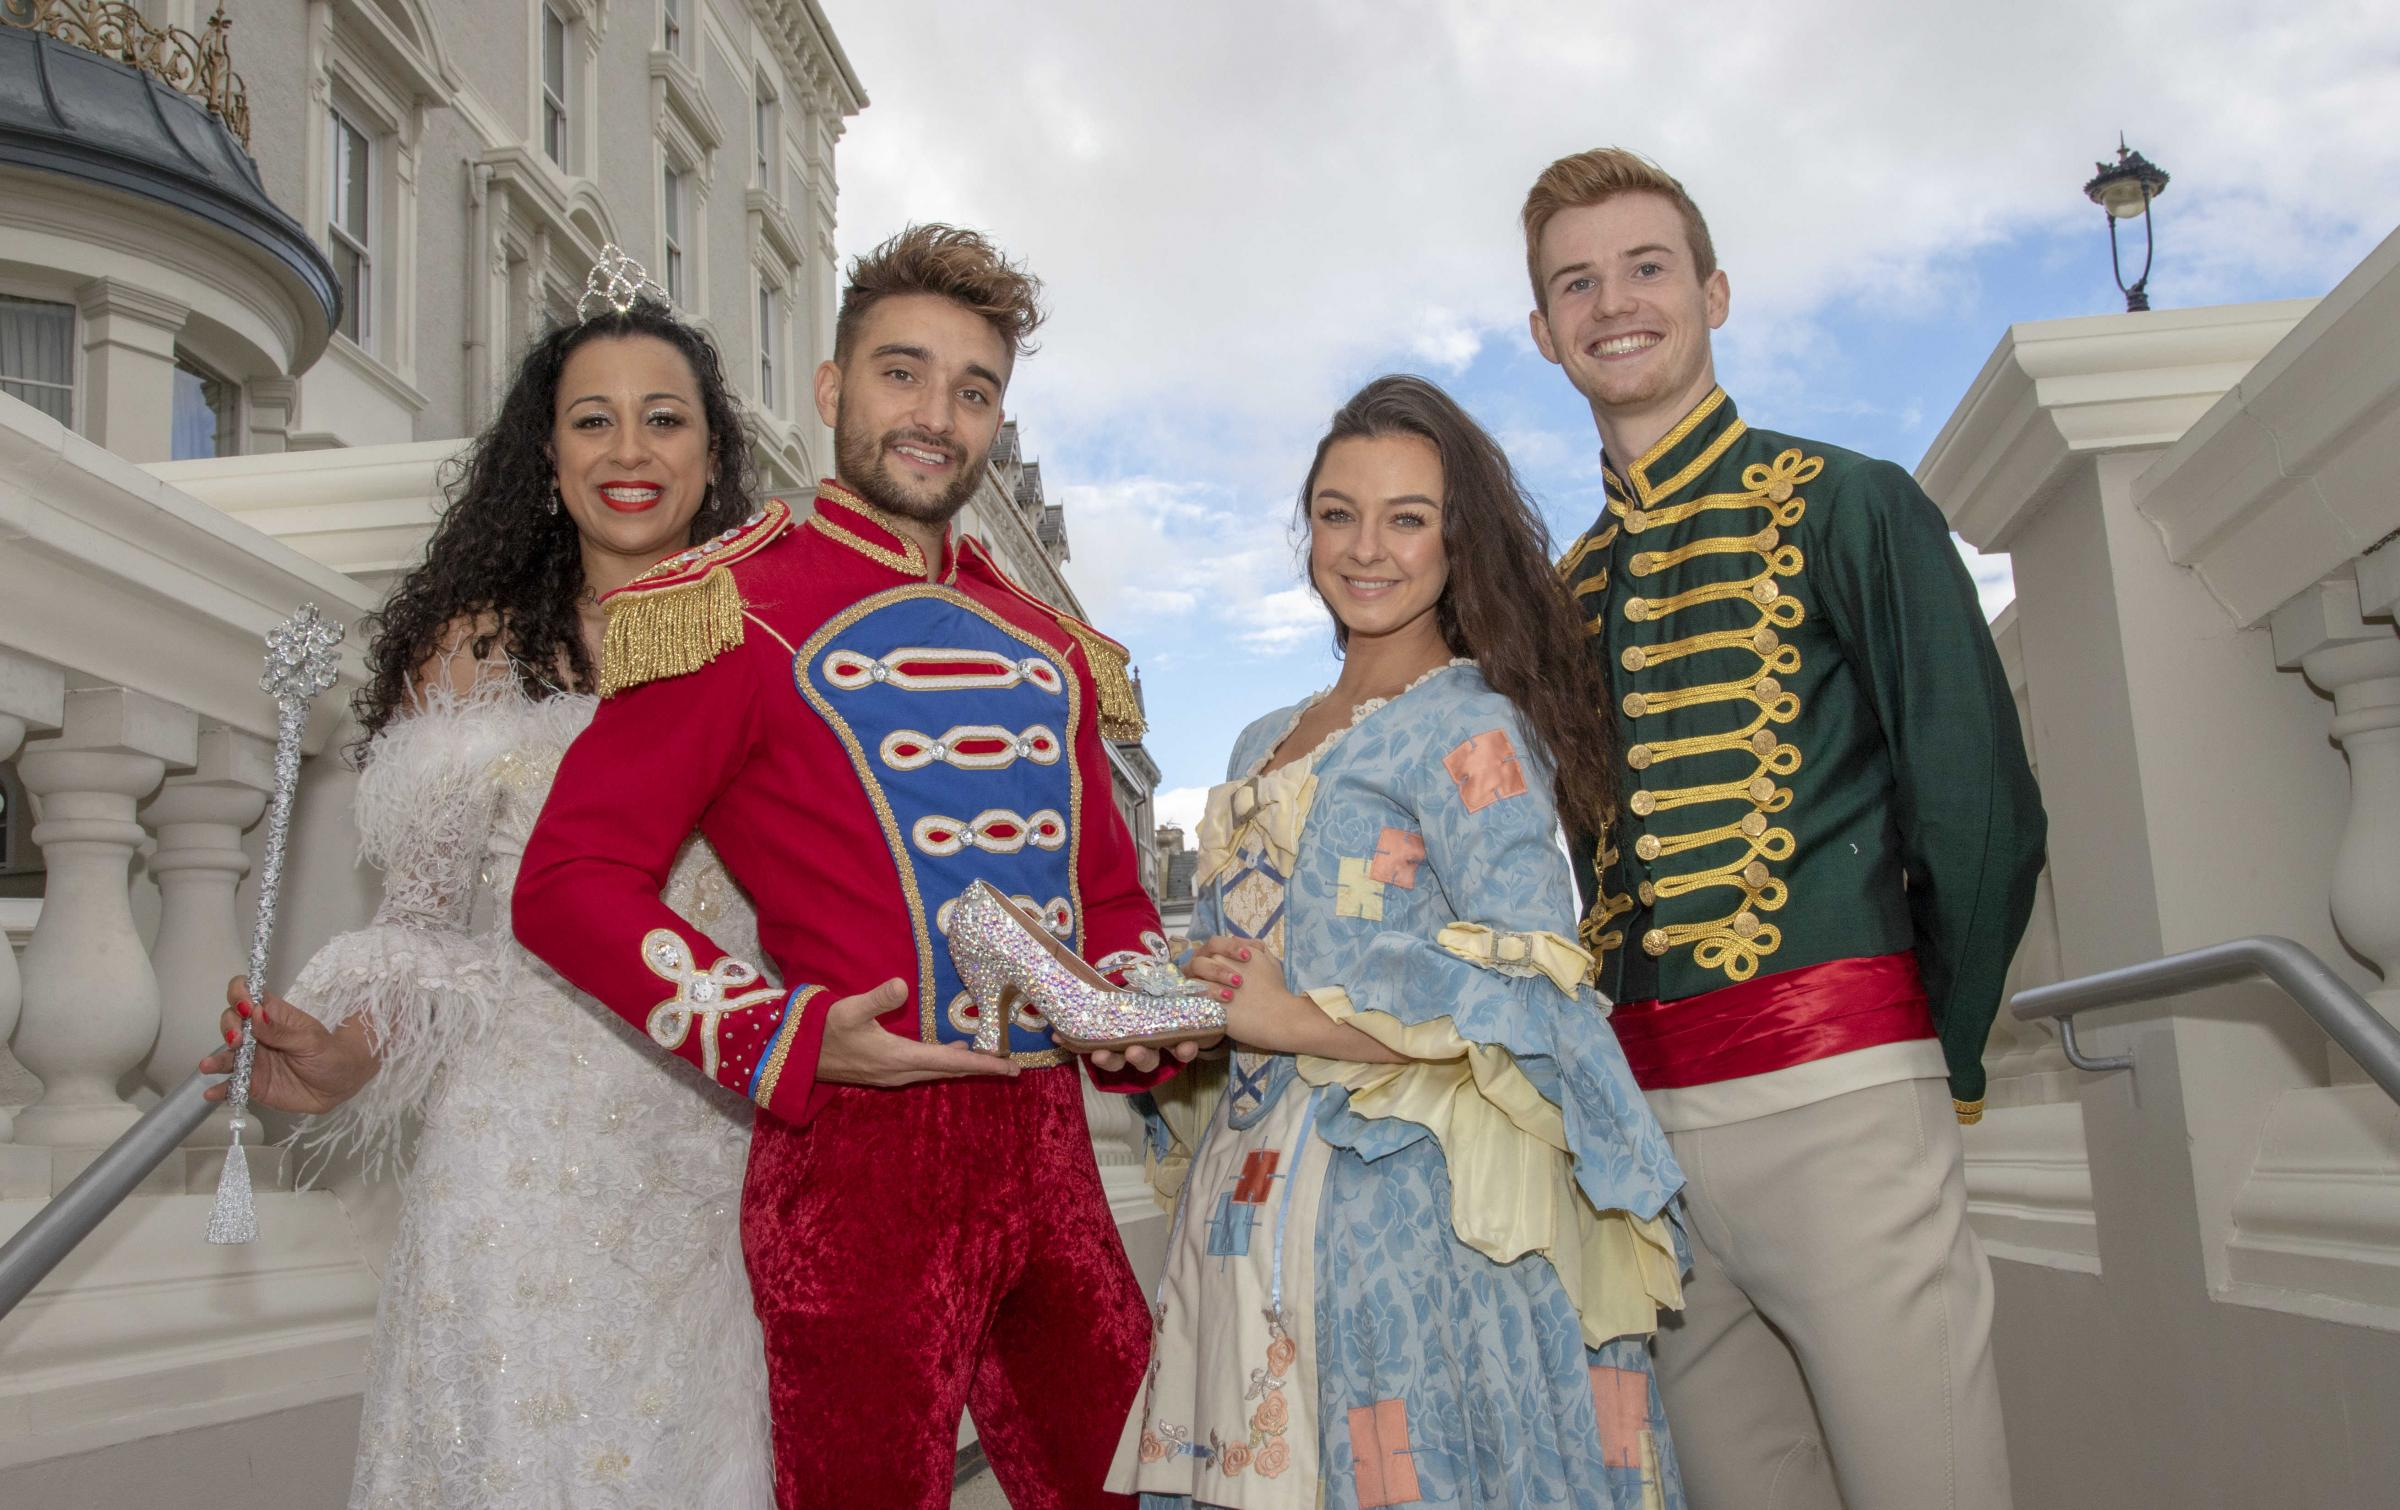 The cast of Cinderella which will be playing at Venue Cymru this Christmas. Picture: Jamie Gilmour